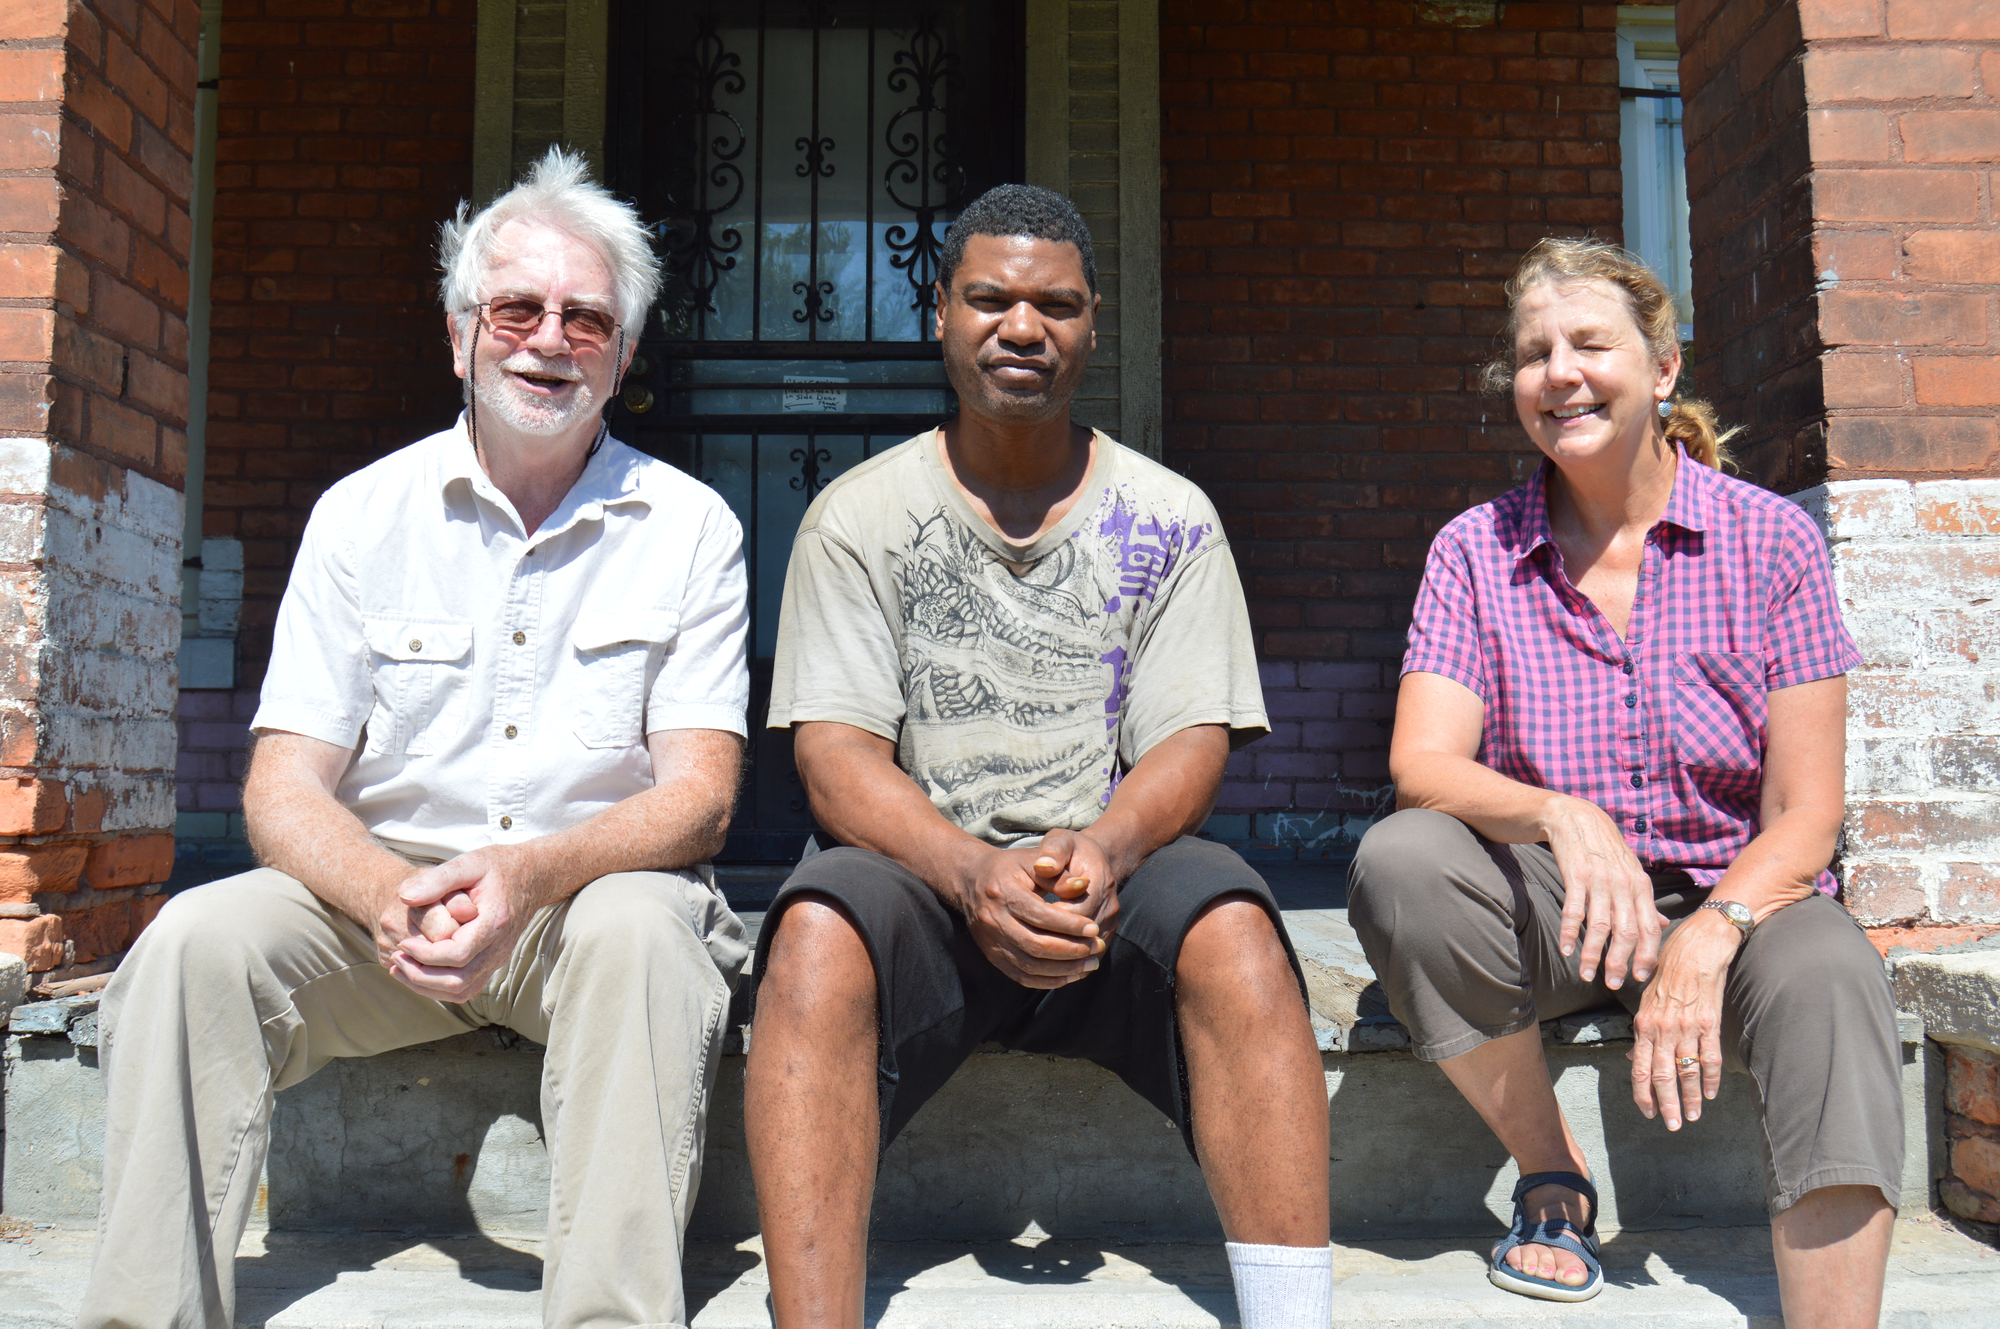 Bill Hall (left) and Kathy Hall Knall (right) with one of the house's current occupants Rodney Harris (middle)Jake Neher/WDET